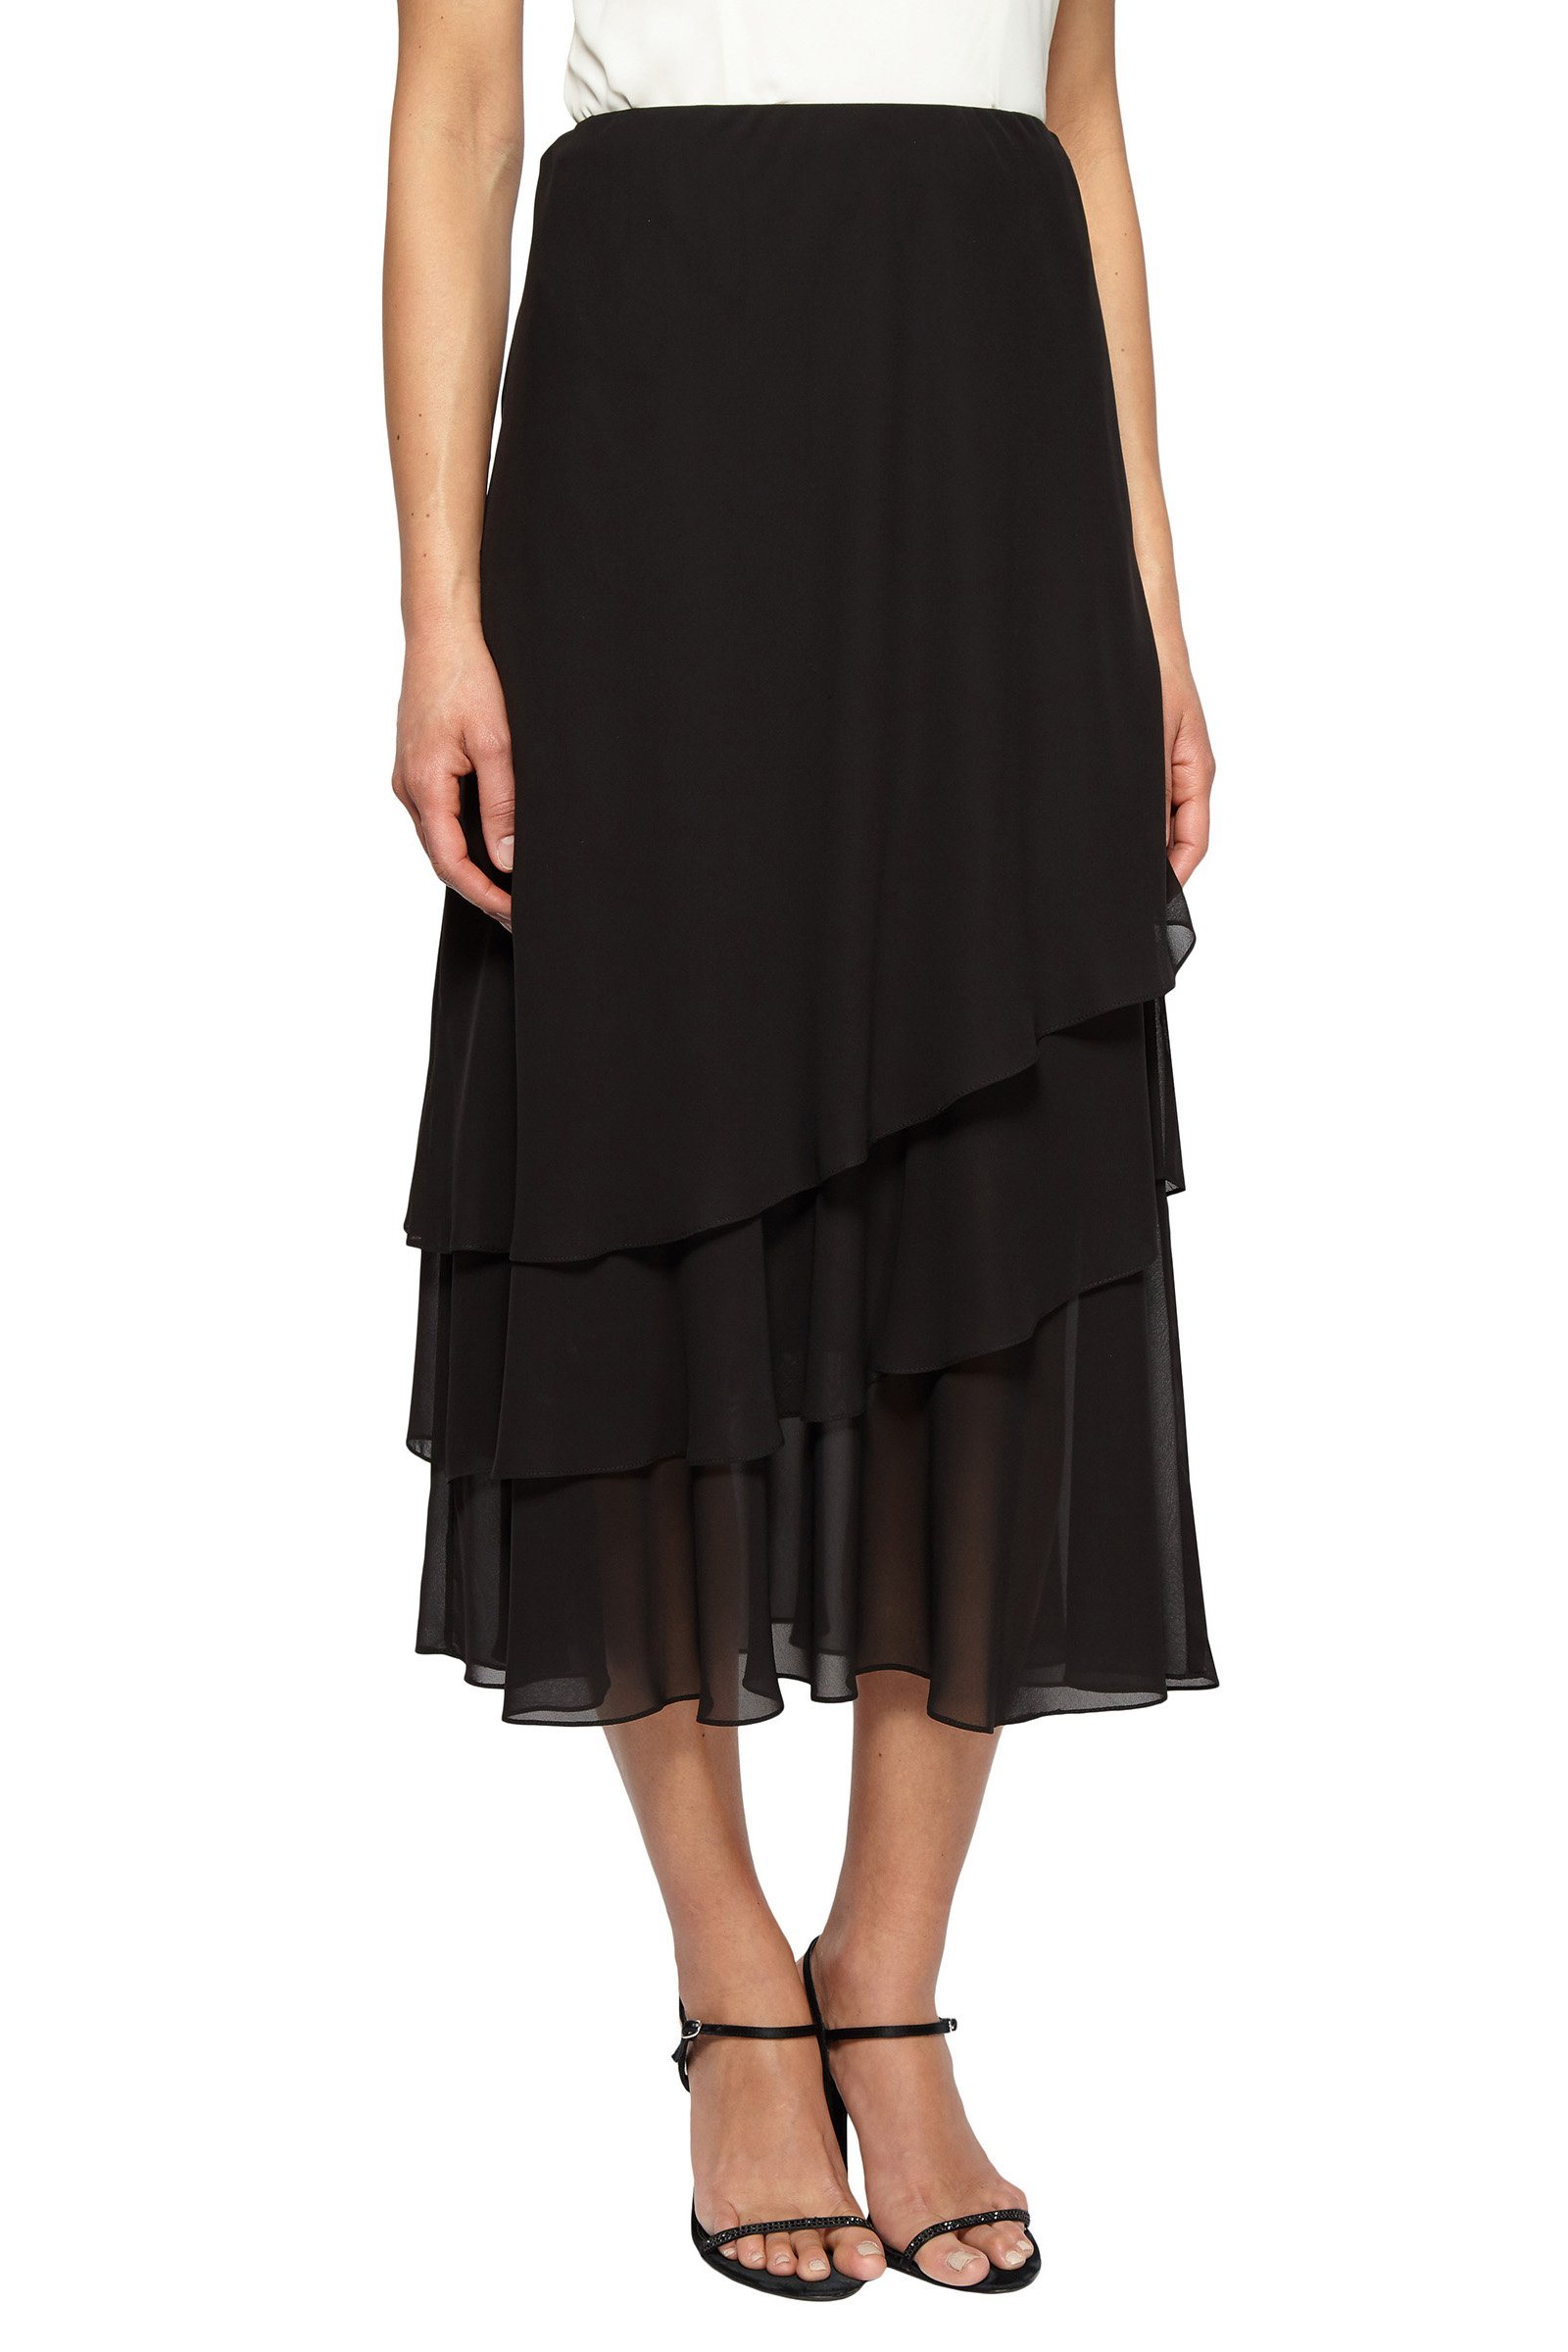 Alex Evenings Women's Chiffon Tea Length Skirt Various Styles (Petite Regular), Black Tier, SP by Alex Evenings